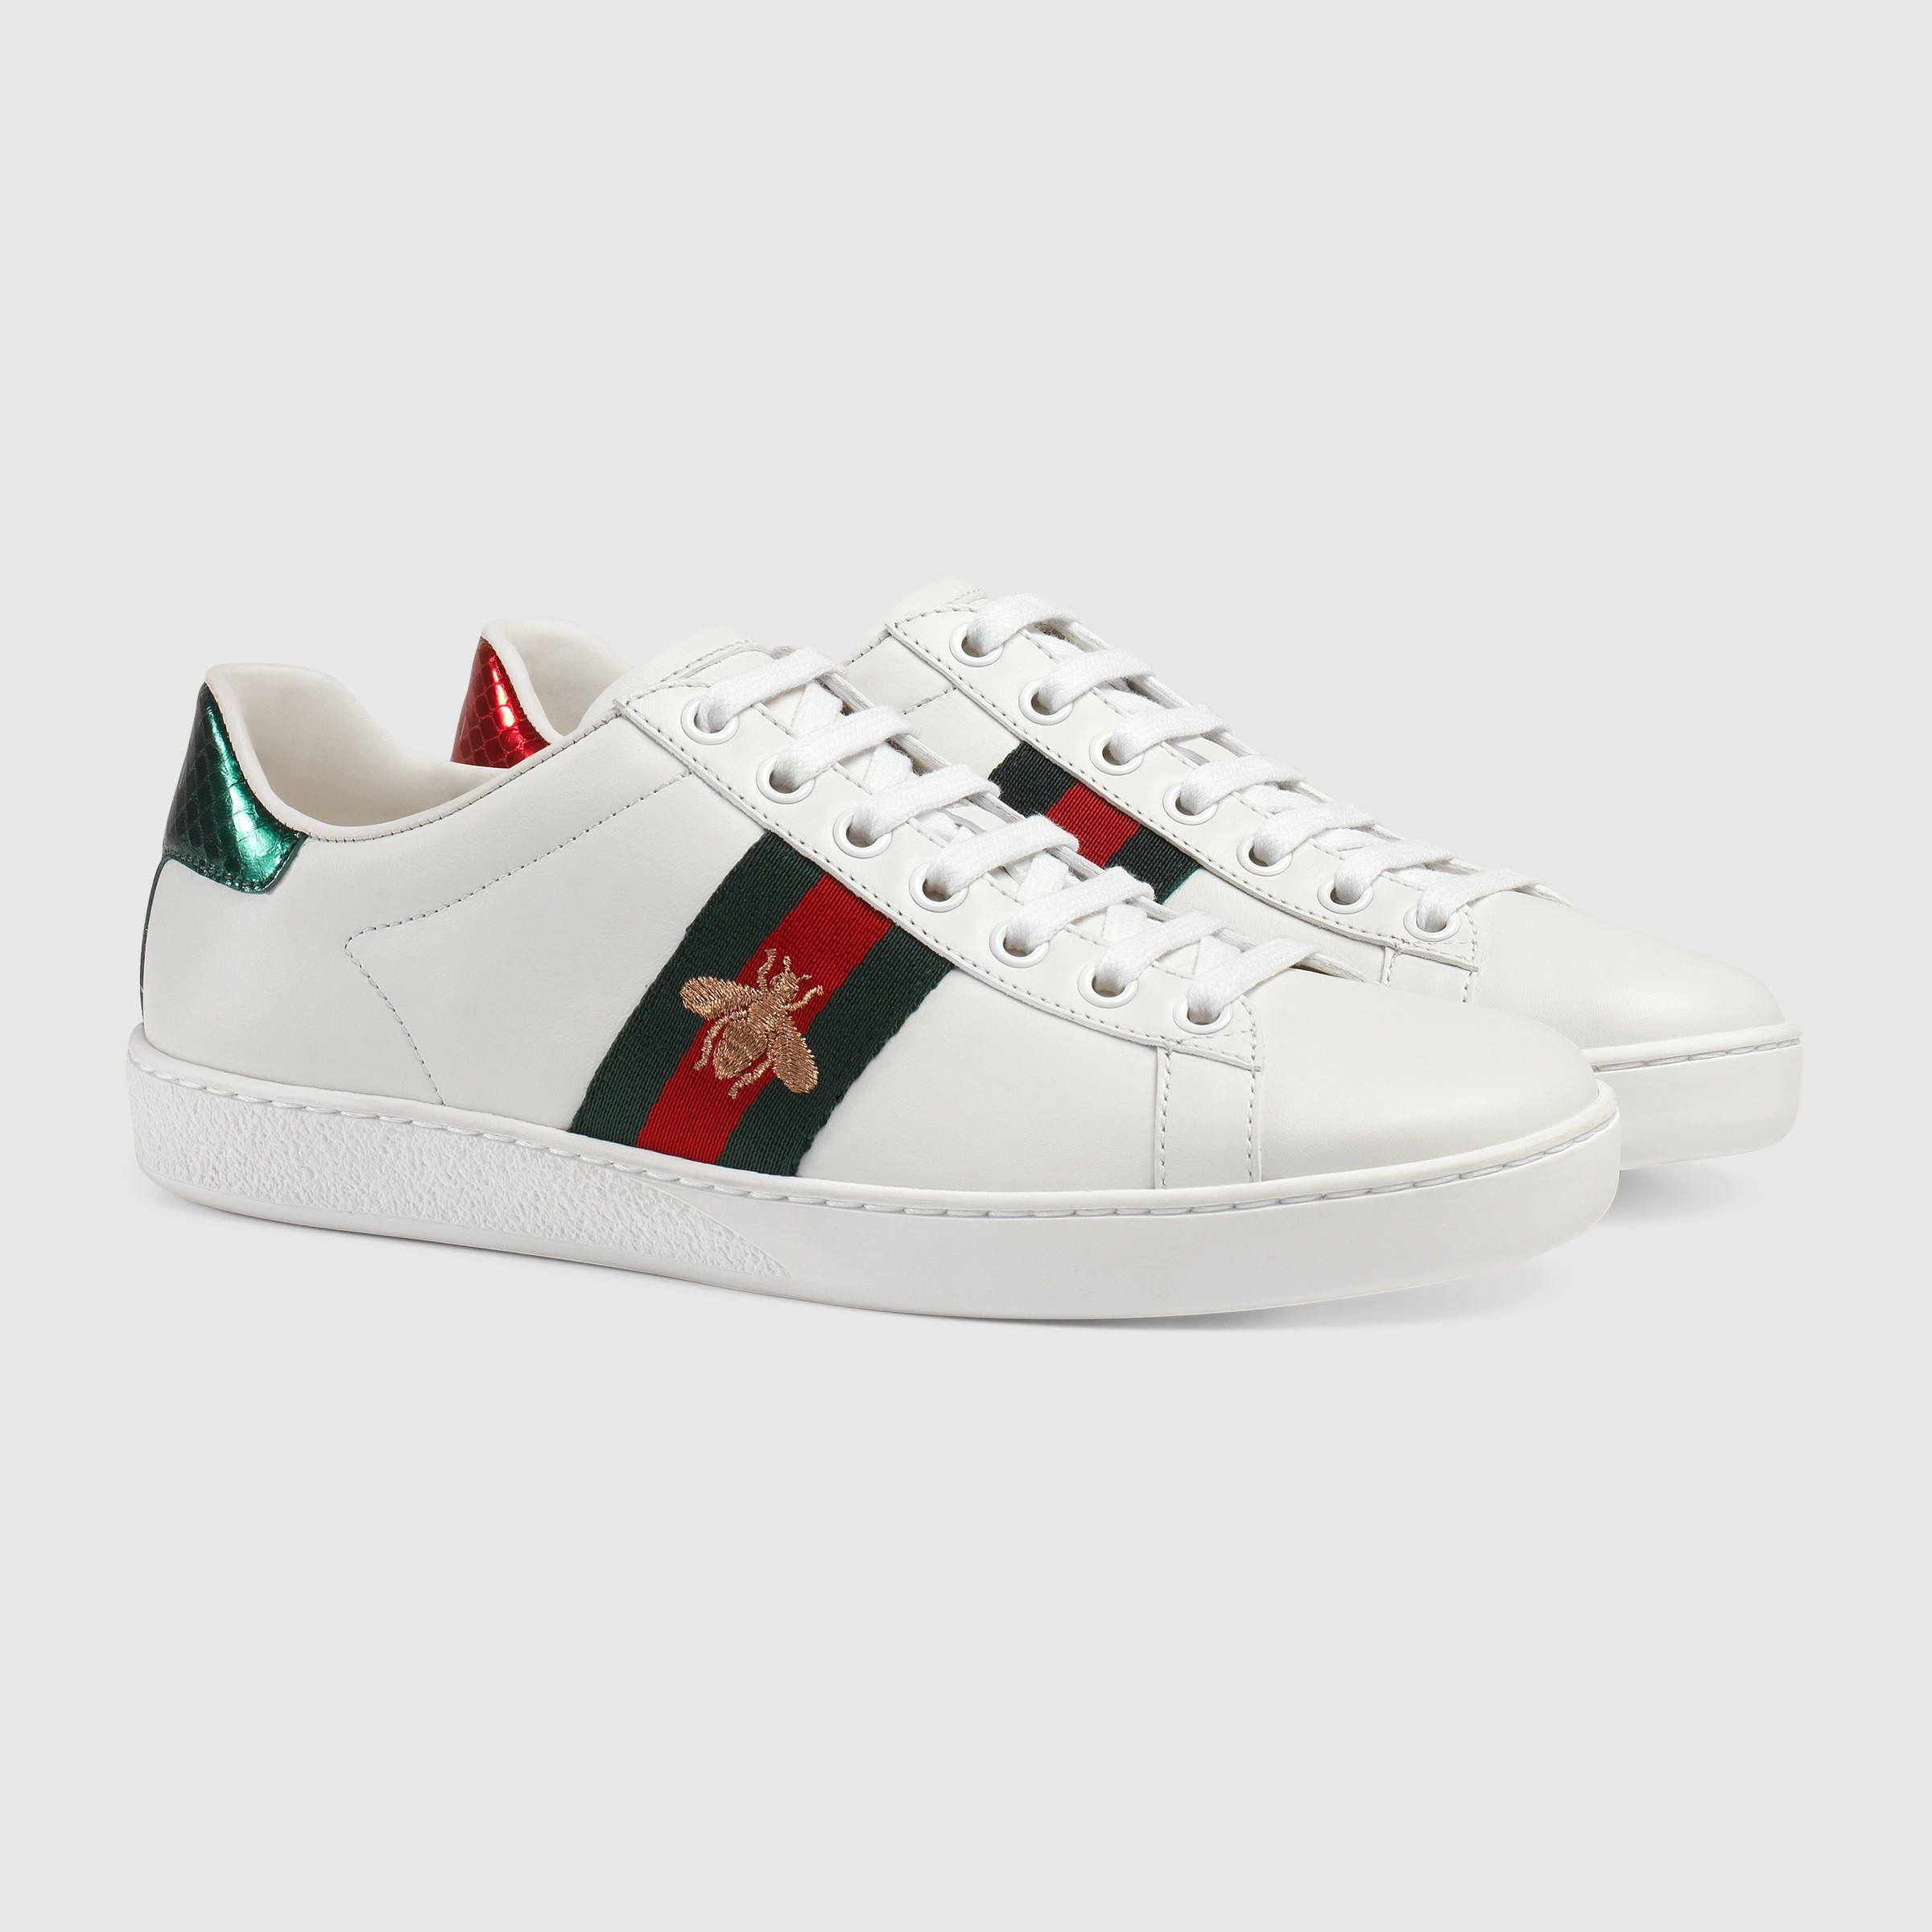 Baskets basses Ace brodées , Gucci Baskets Femme 431942A38G09064